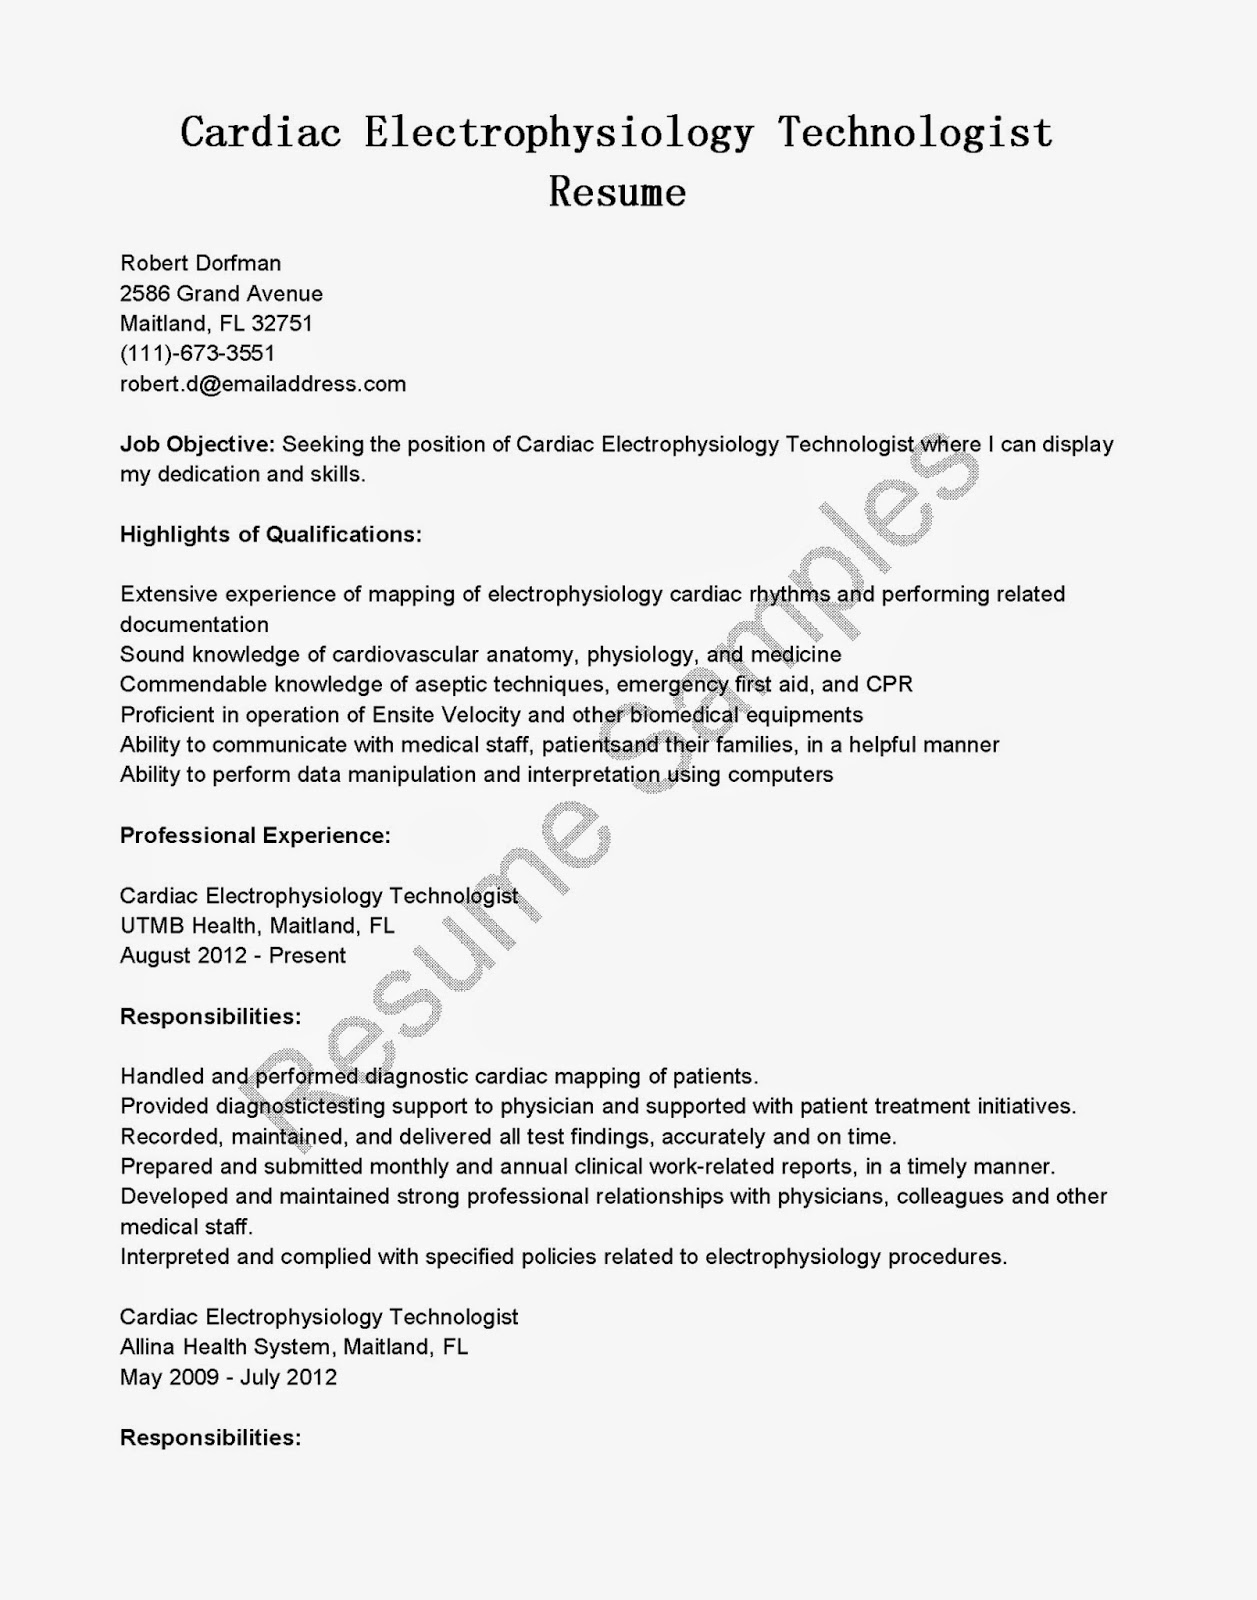 resume samples  cardiac electrophysiology technologist